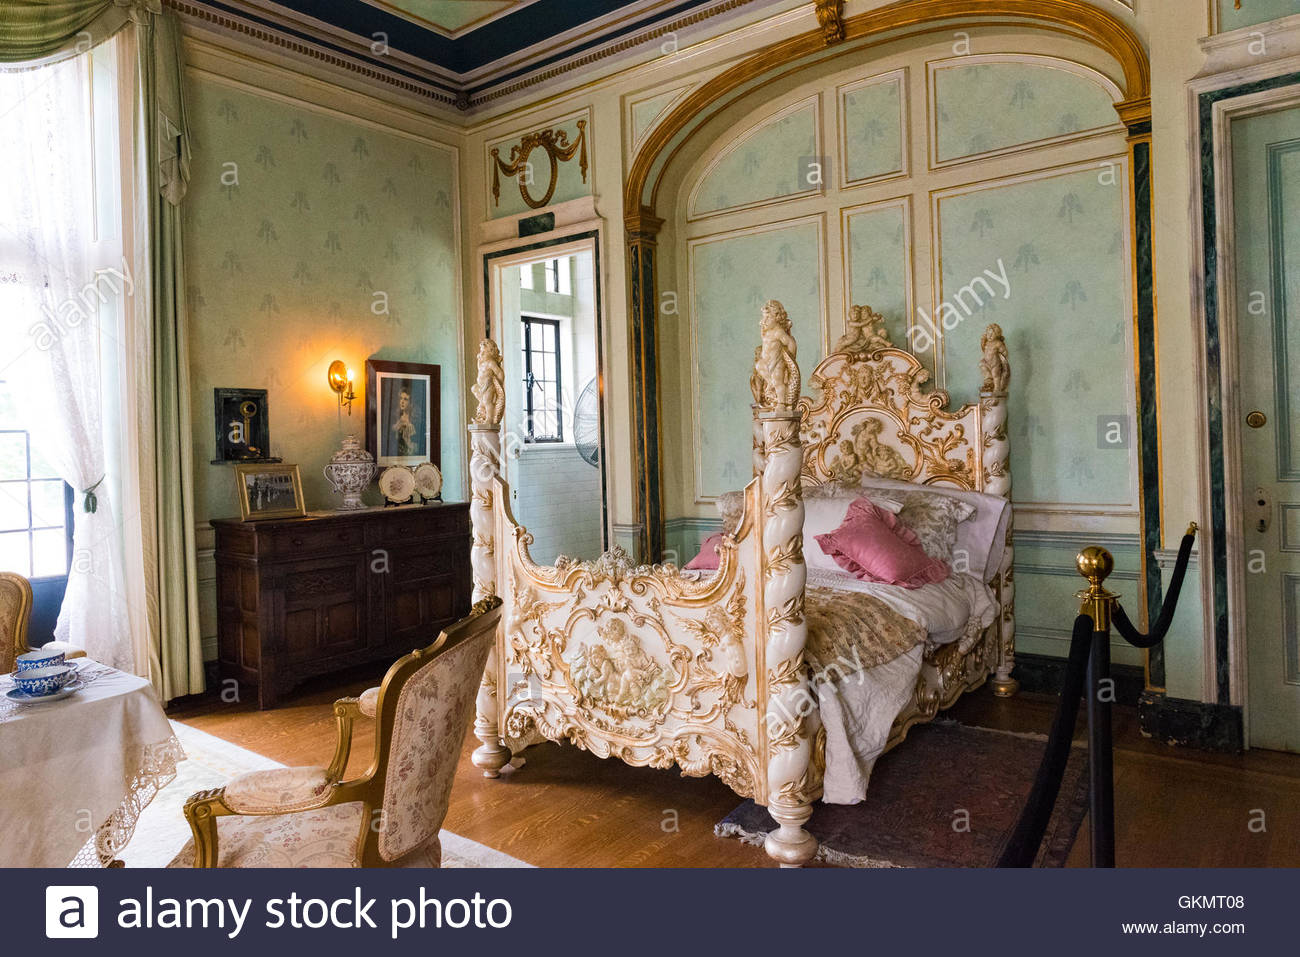 Casa Loma interior details The Windsor room was prepared in case any Stock Photo 115398536  Alamy